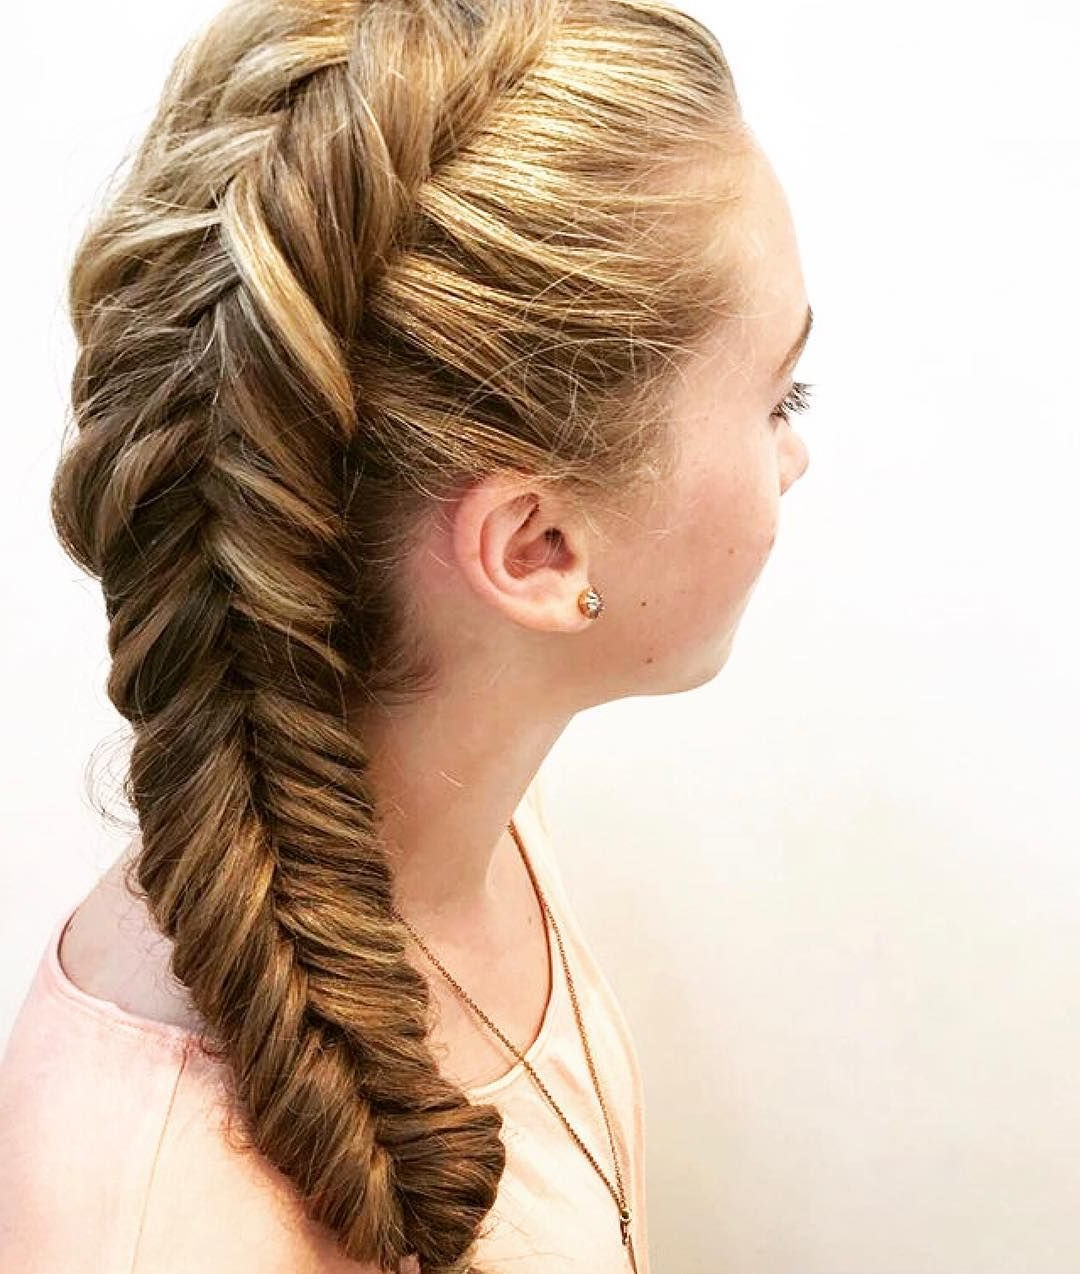 Well Known Rope And Fishtail Braid Hairstyles Regarding 55 Trendy Braided Hairstyle That Are Style Statement (Gallery 1 of 20)